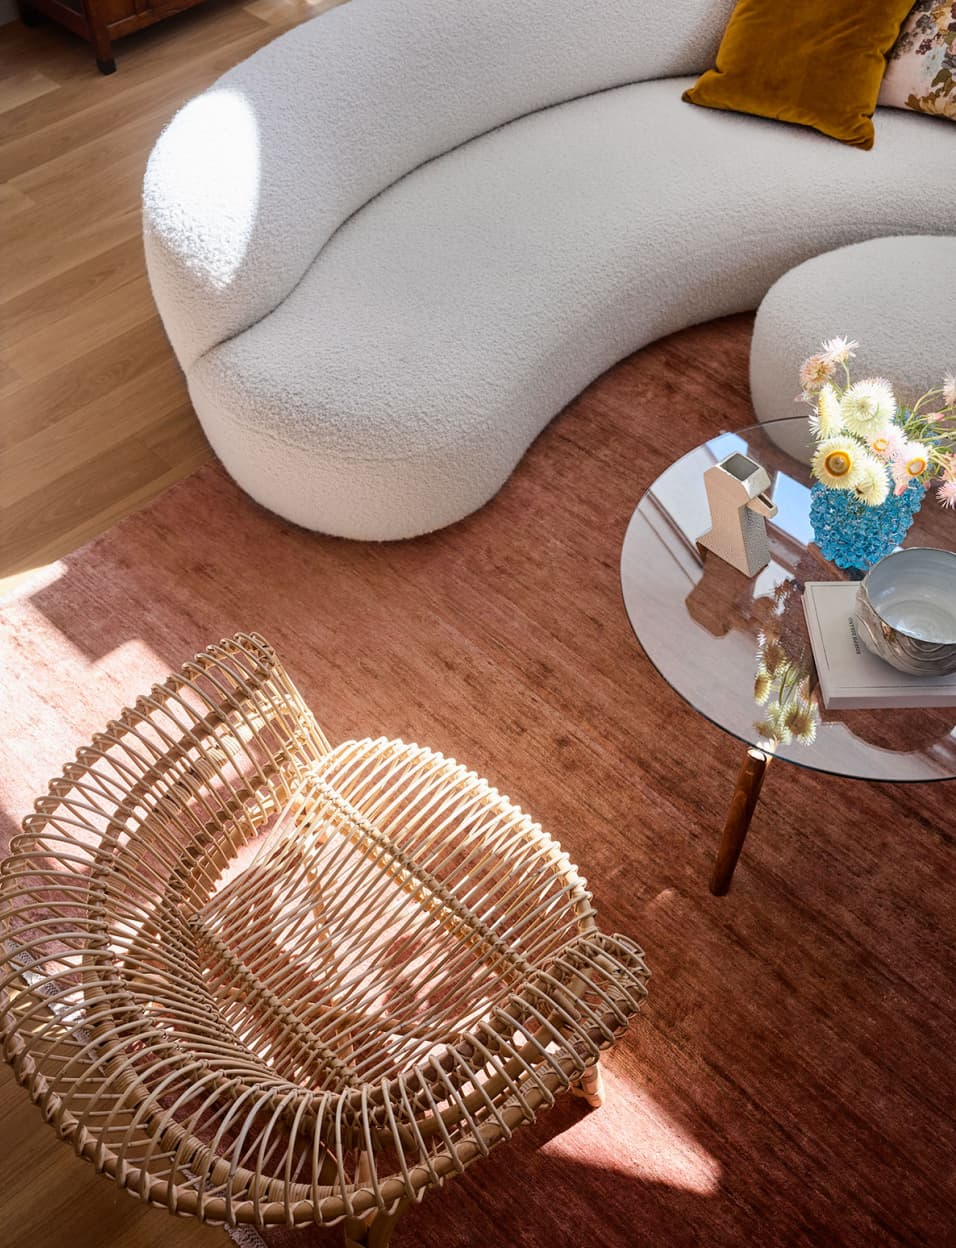 '80s Inspired Curved Furniture Design is Back & It's Luxurious